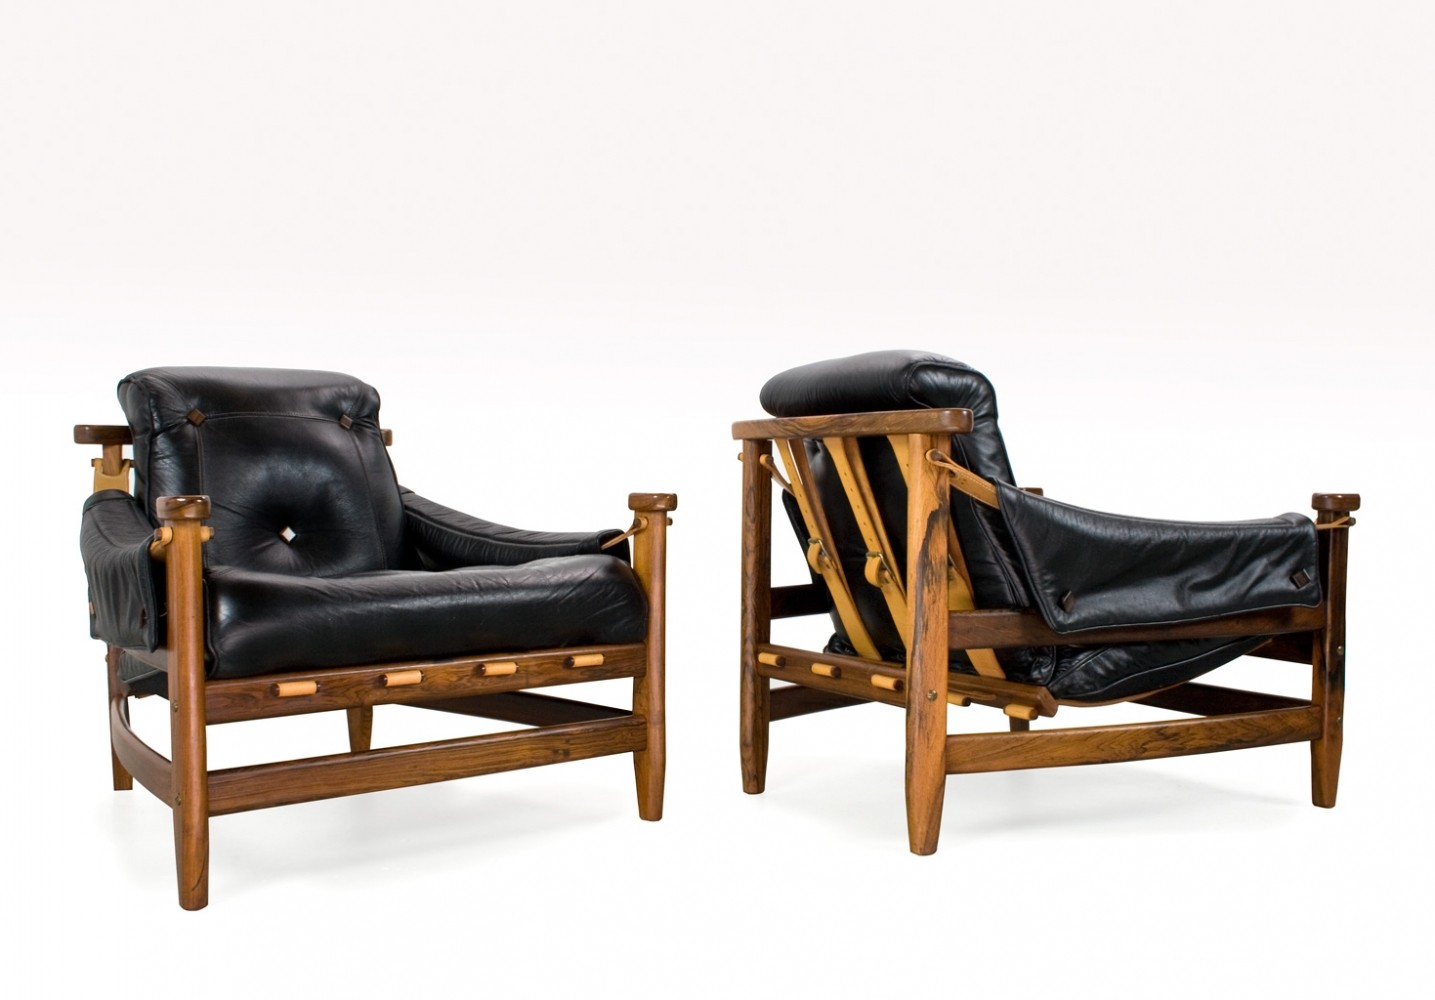 Jean Gillon Leather Bertioga Chairs, Brazil 1960s